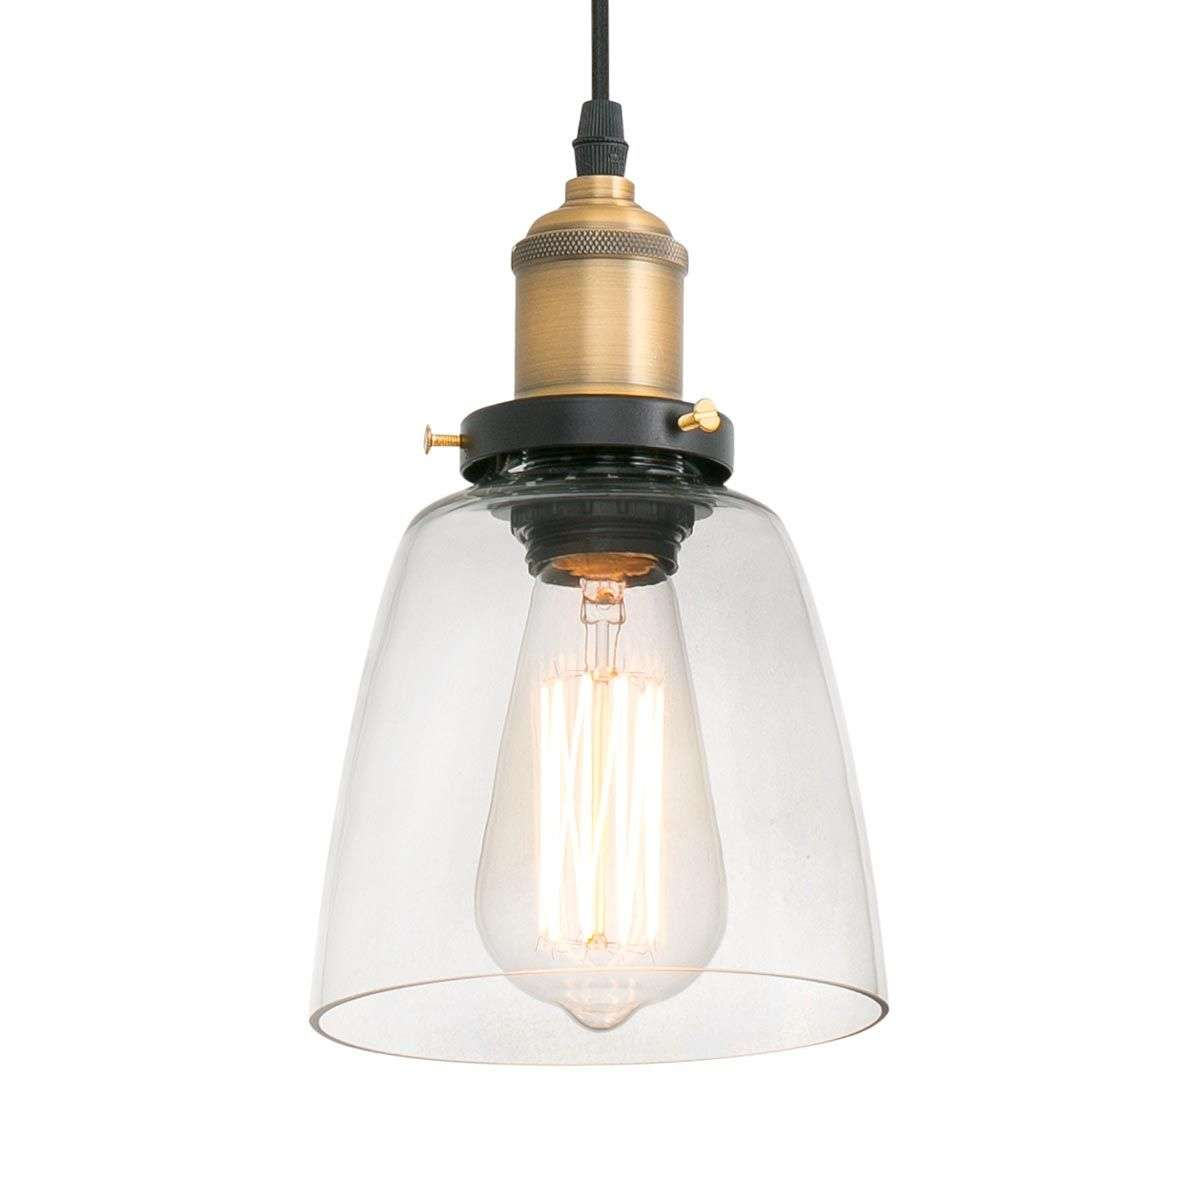 Transpa Liz Ii Pendant Light 3507189 31